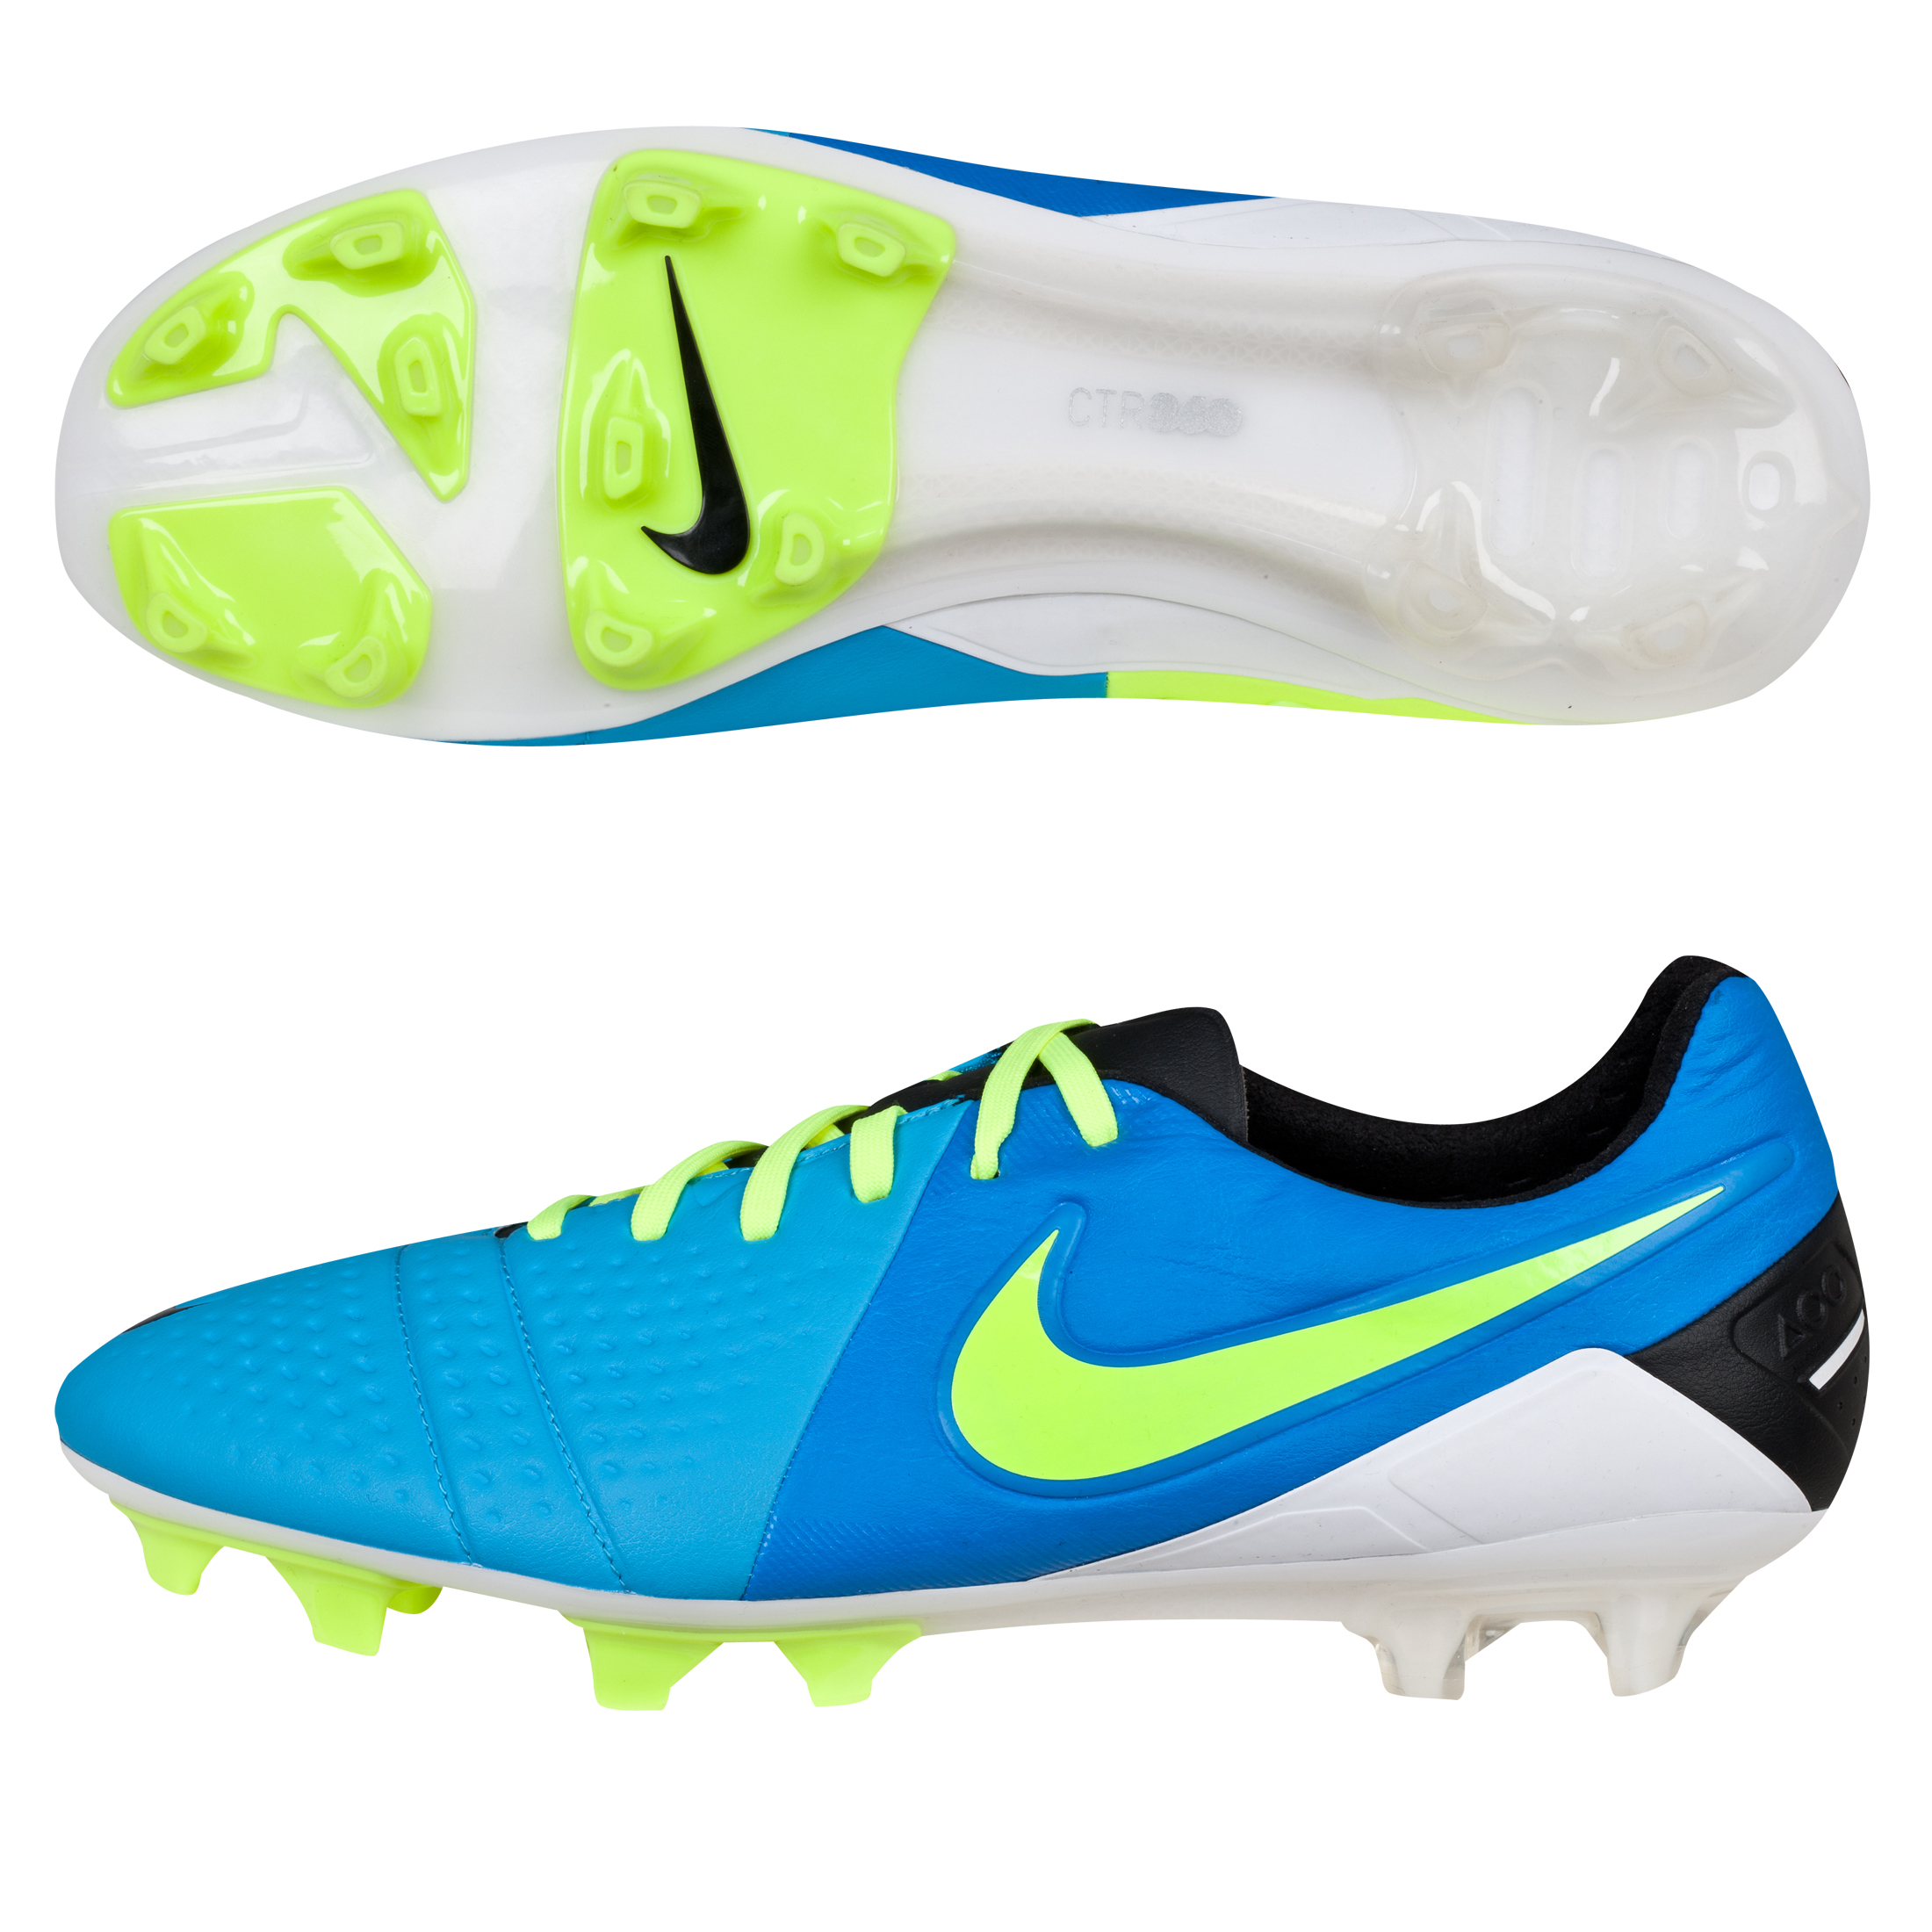 Nike CTR360 Maestri III Firm Ground Football Boots Blue